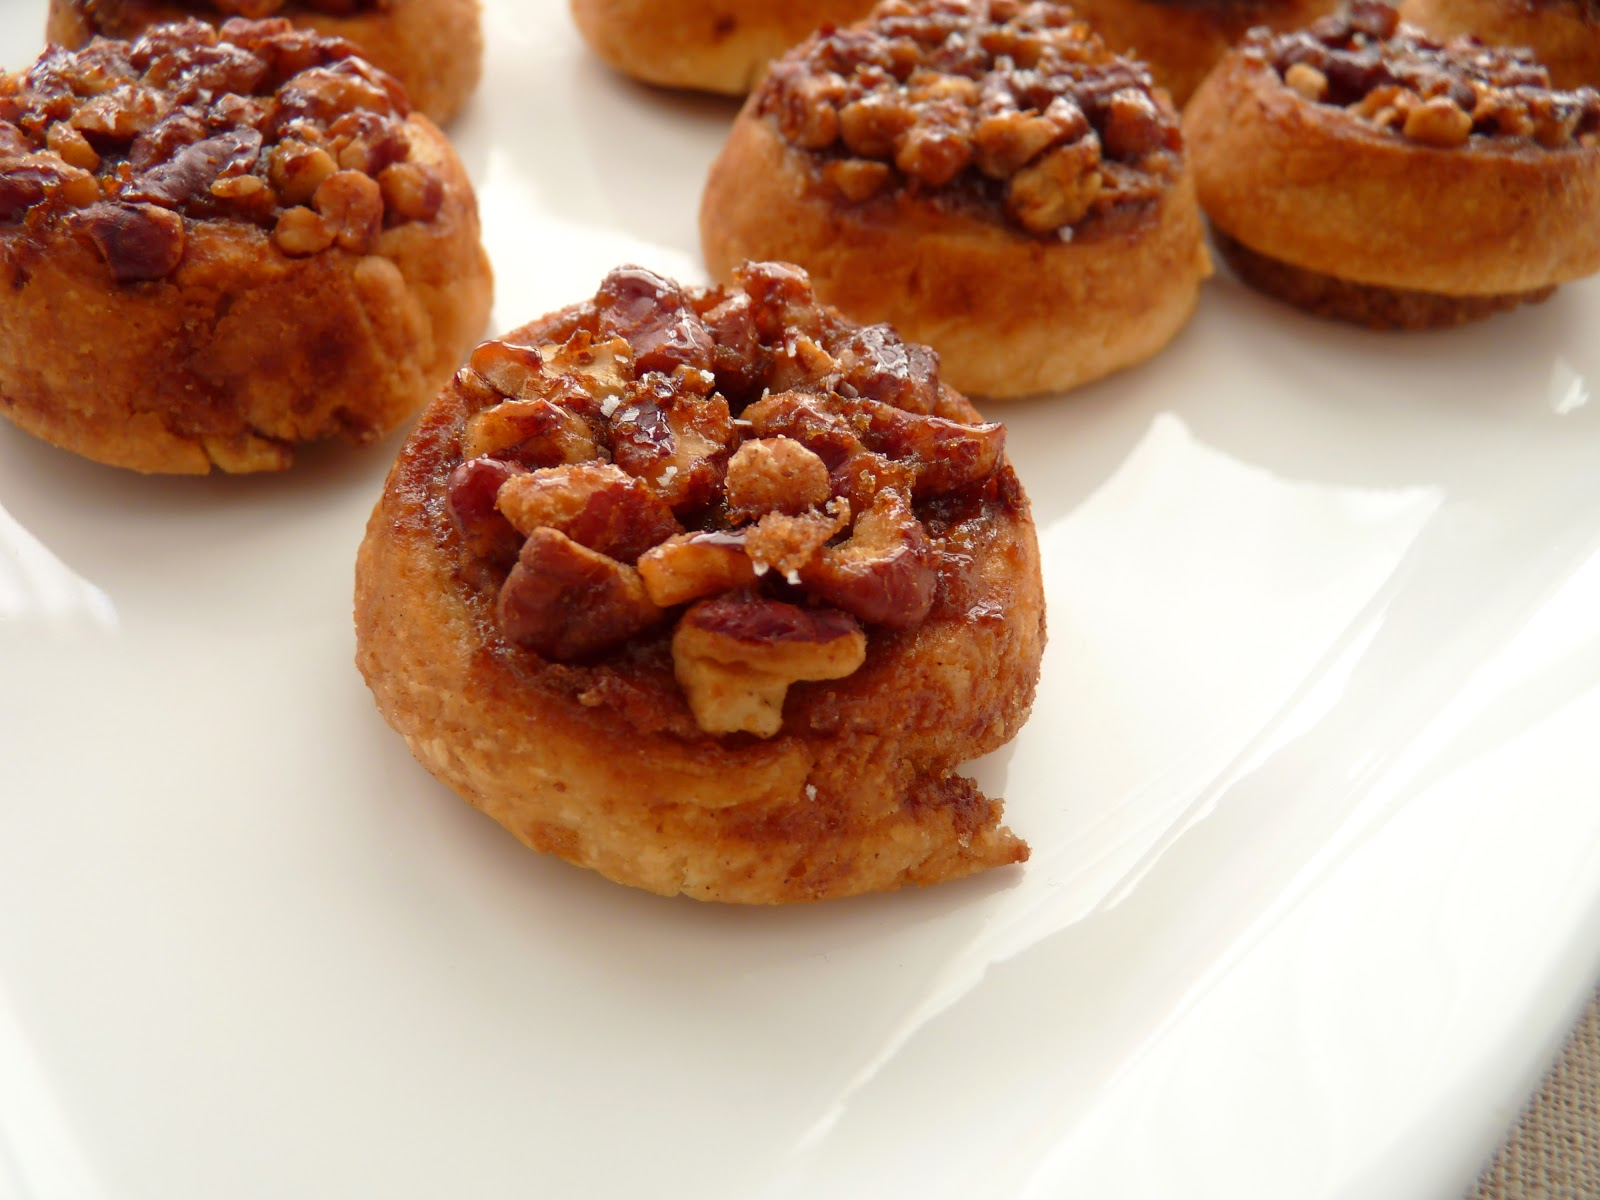 ... pecan sticky buns with orange and bourbon glaze pecan praline bites